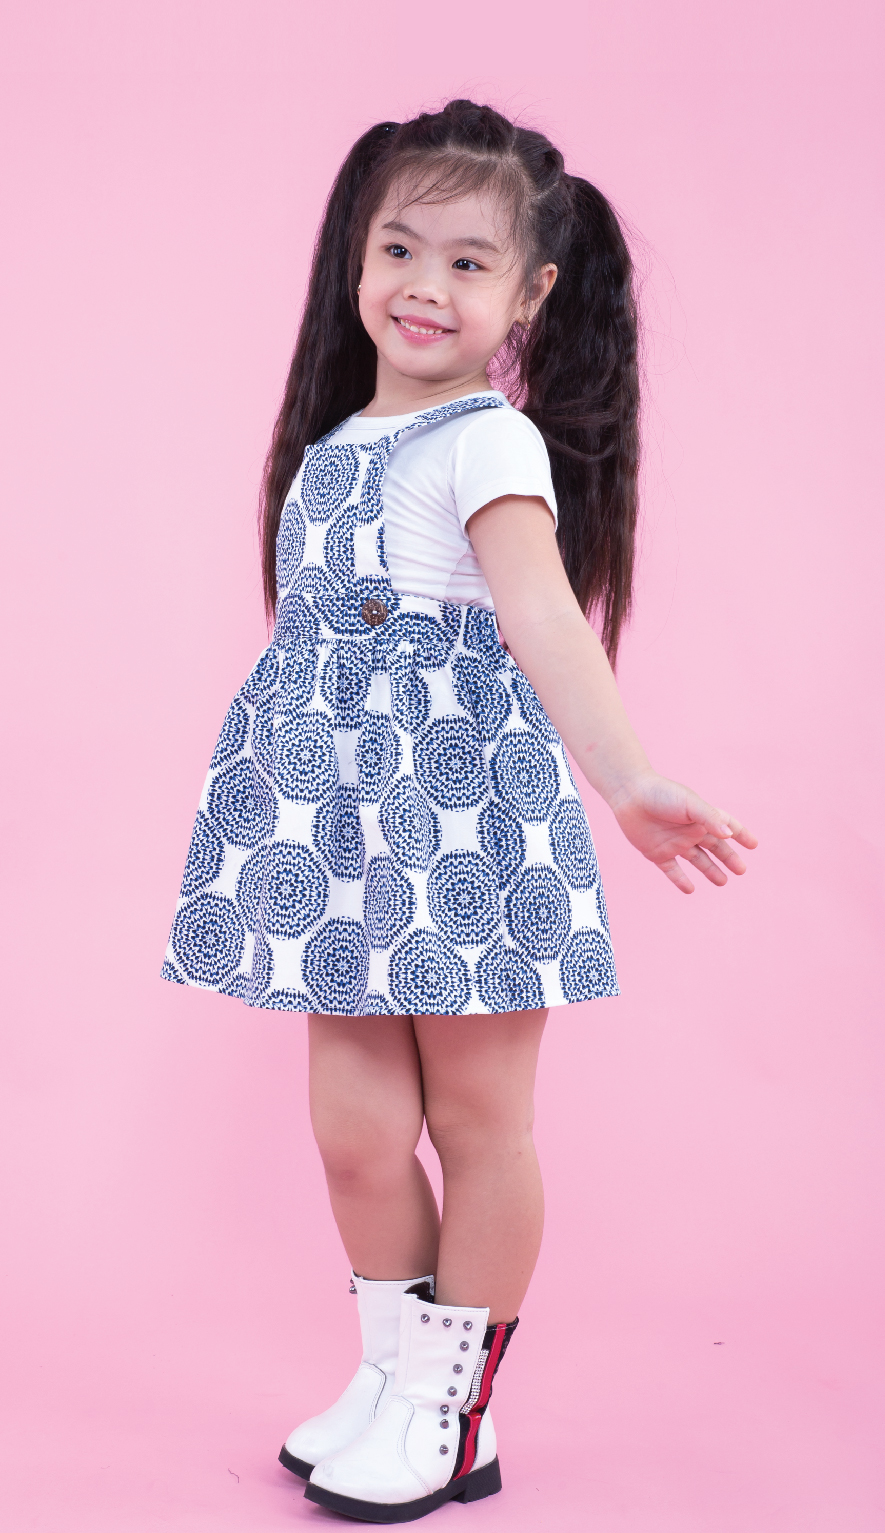 UKID161 - DUNGAREE SKIRT